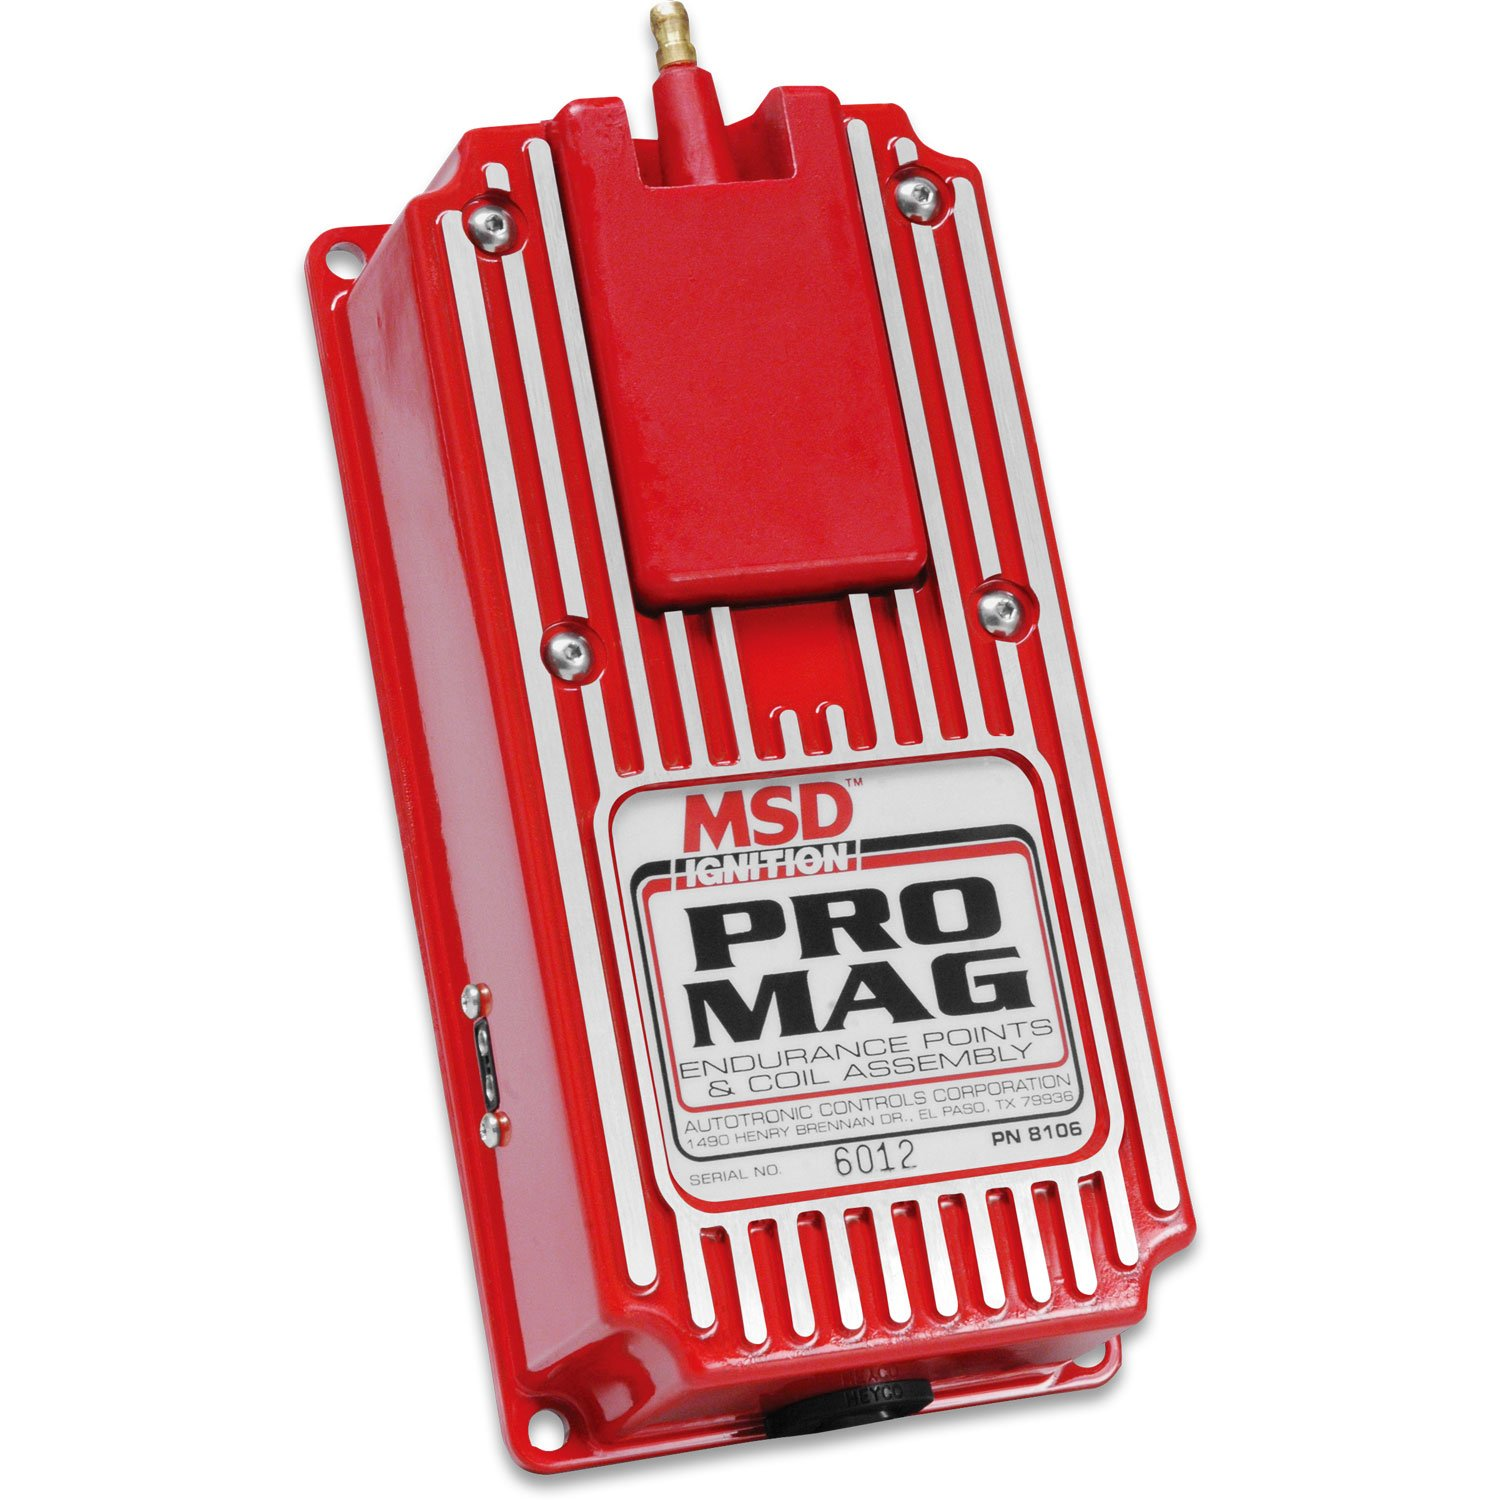 8106_v1 pro mag 8106 pro mag 12 20 amp electronic points box, red msd msd pro mag wiring diagram at crackthecode.co